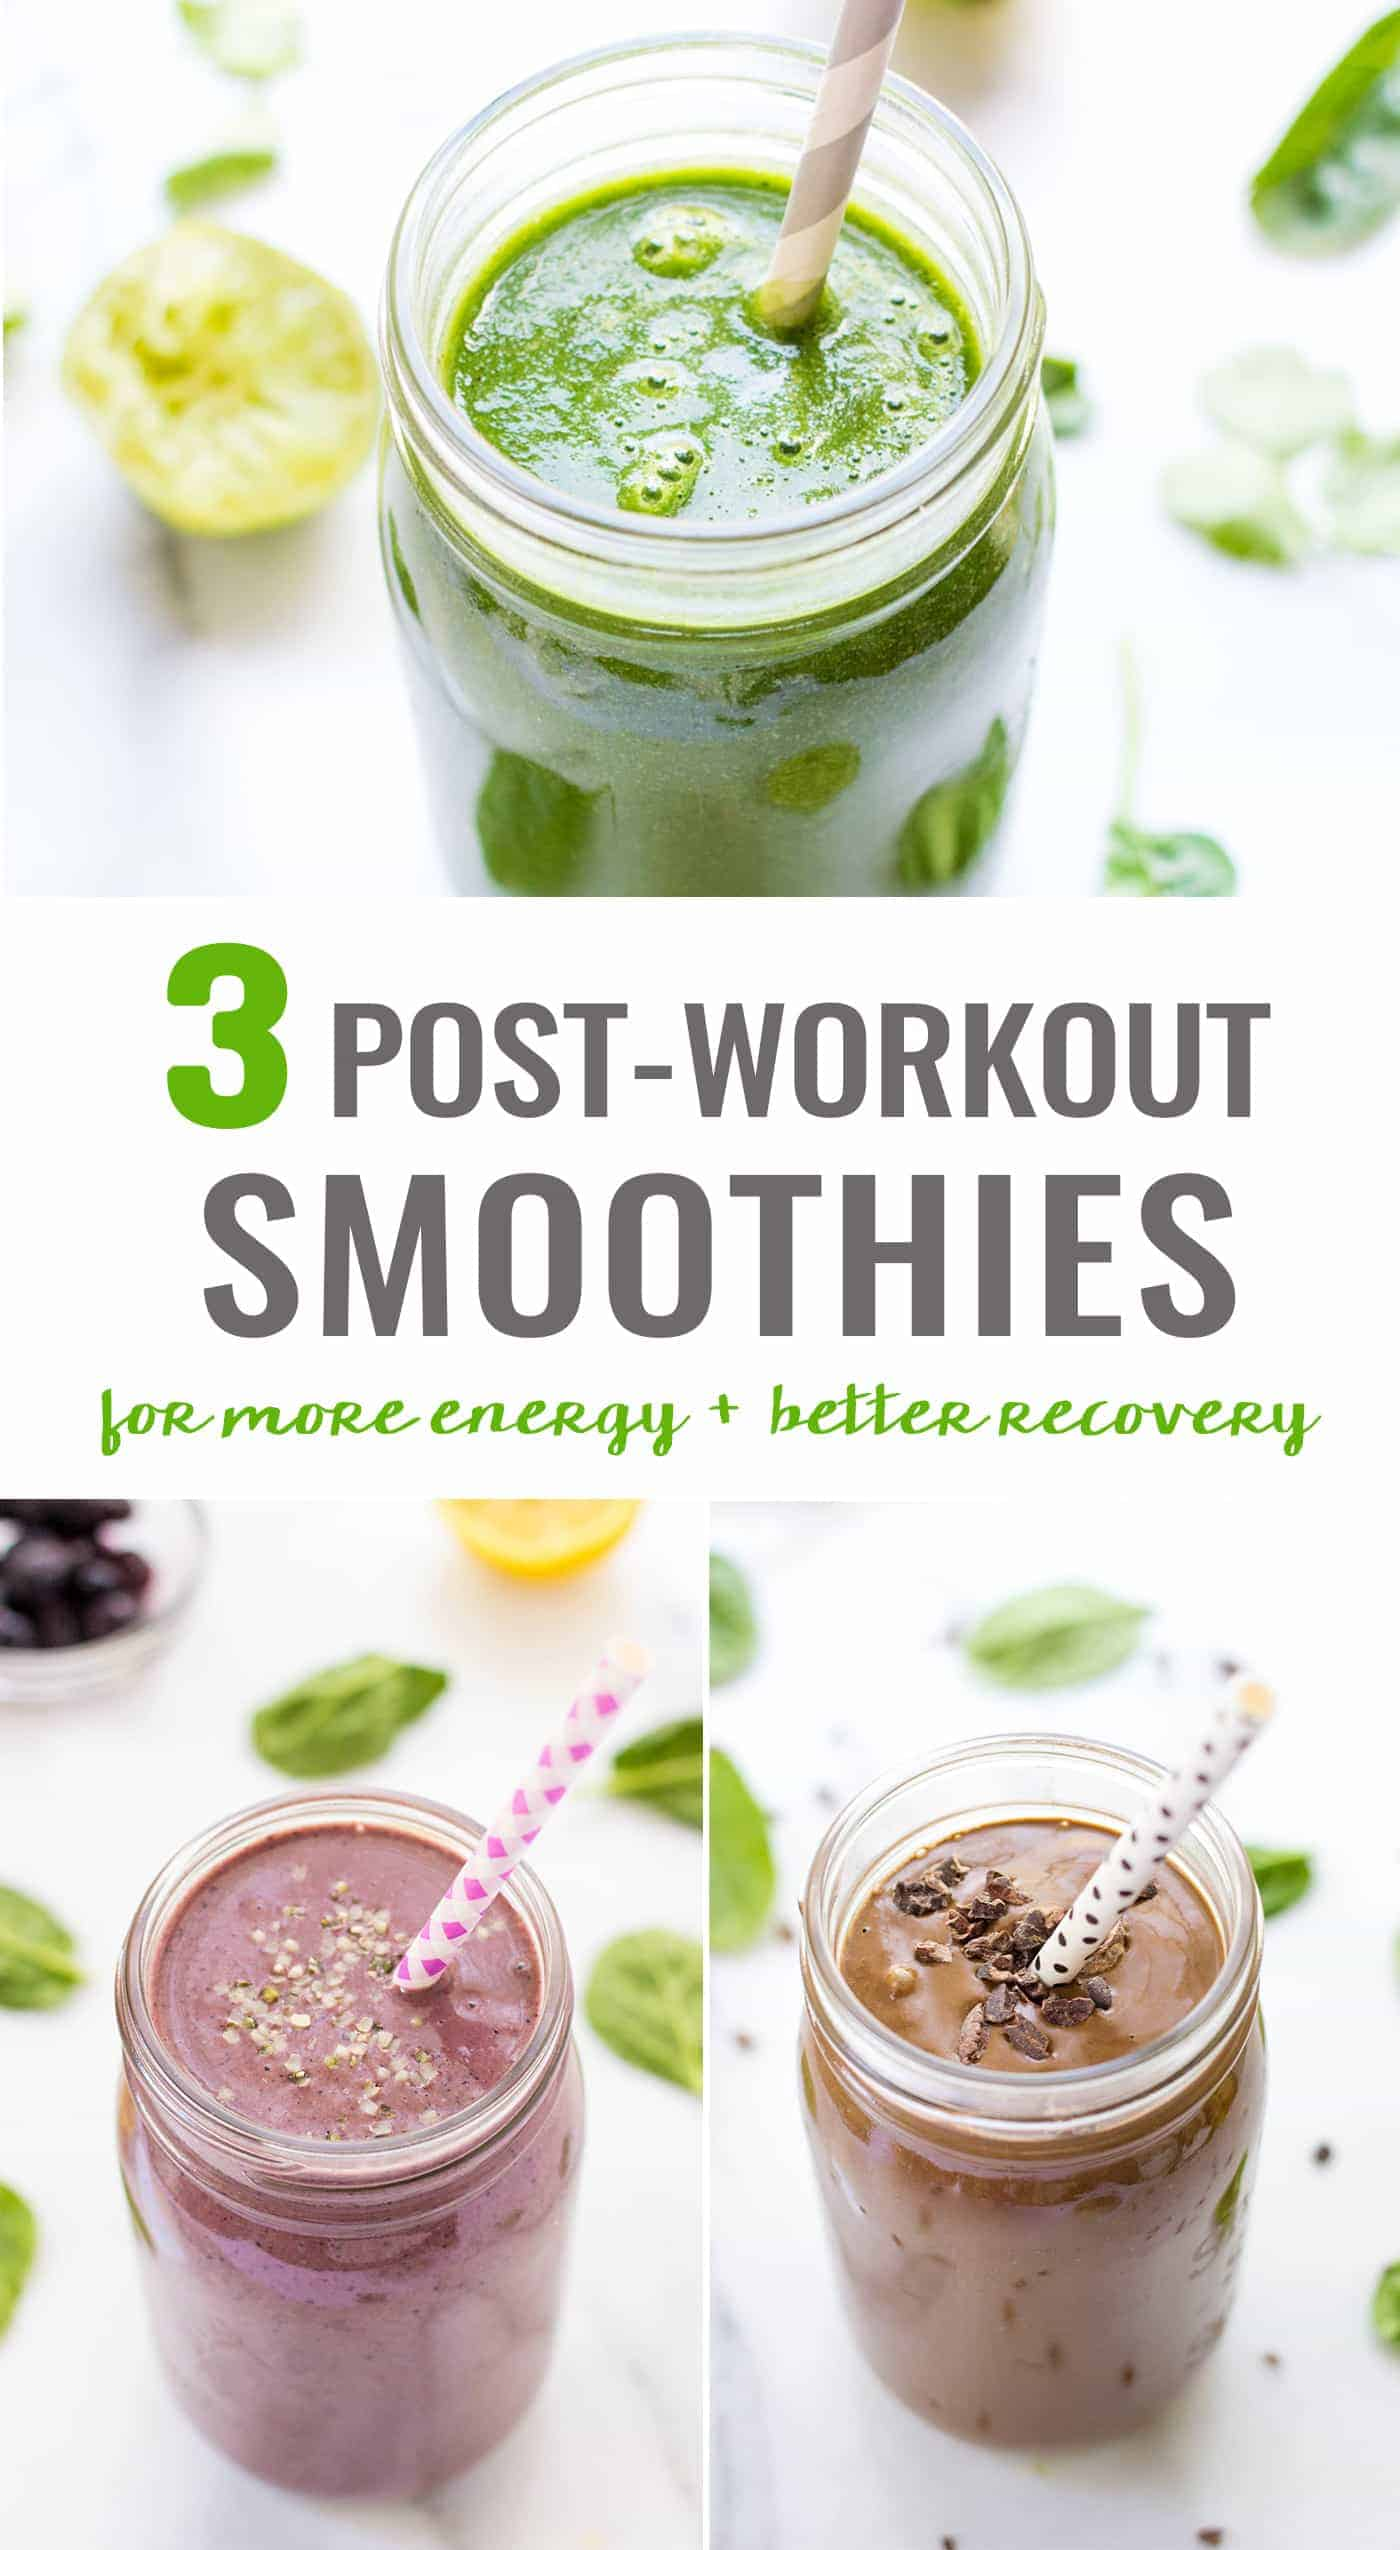 The 3 BEST post-workout smoothies to get more energy and recover more quickly